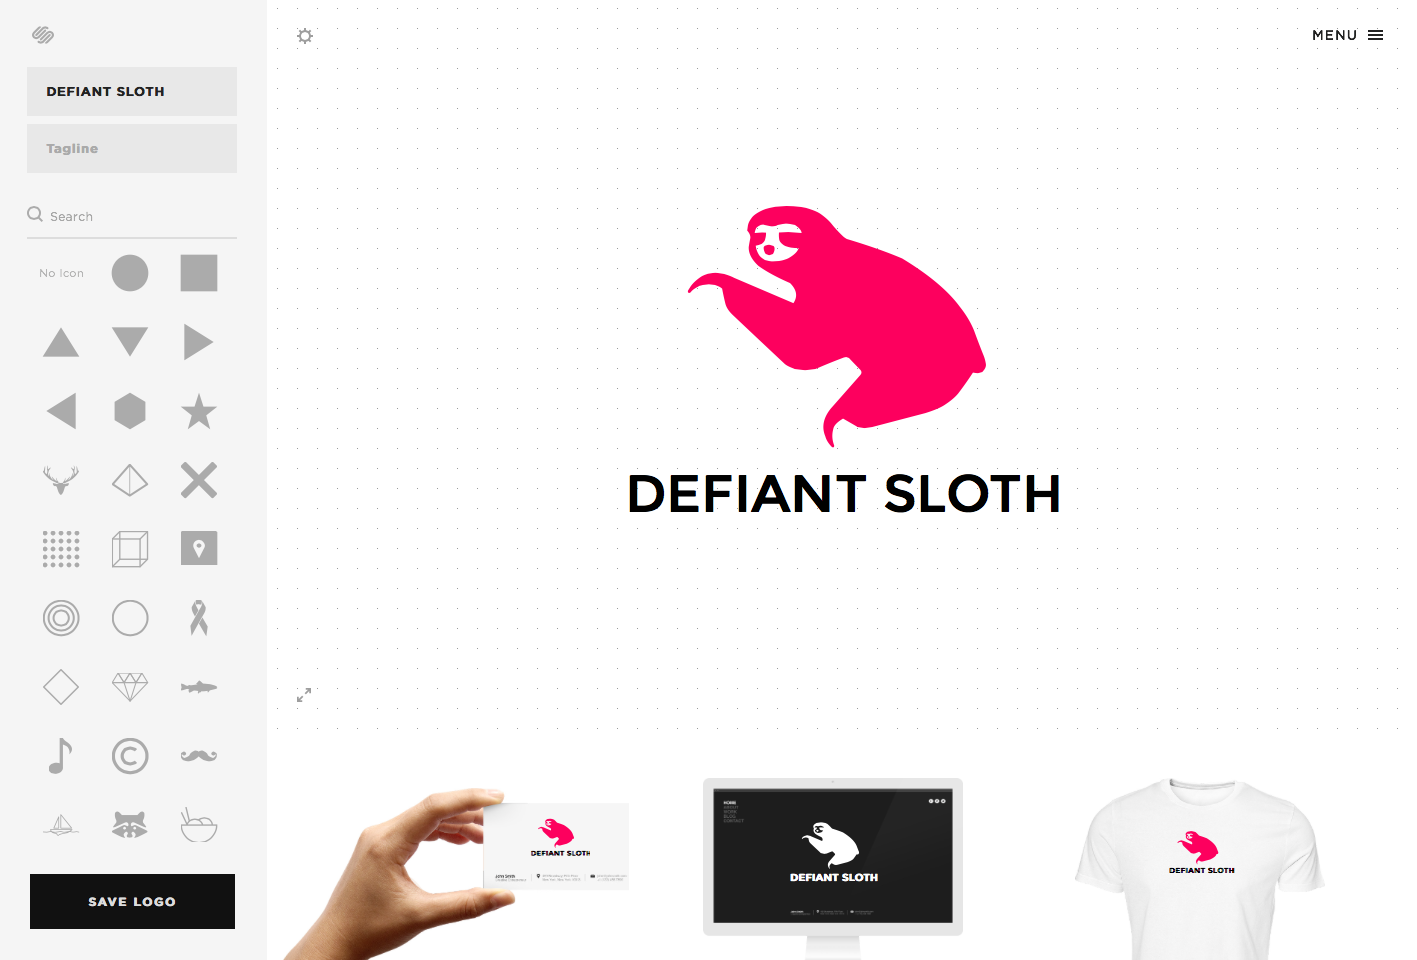 My editing canvas for Defiant Sloth's new logo. Squarespace shows what the logo looks like across a few physical objects, too, like a business card and t-shirt. Nice details.